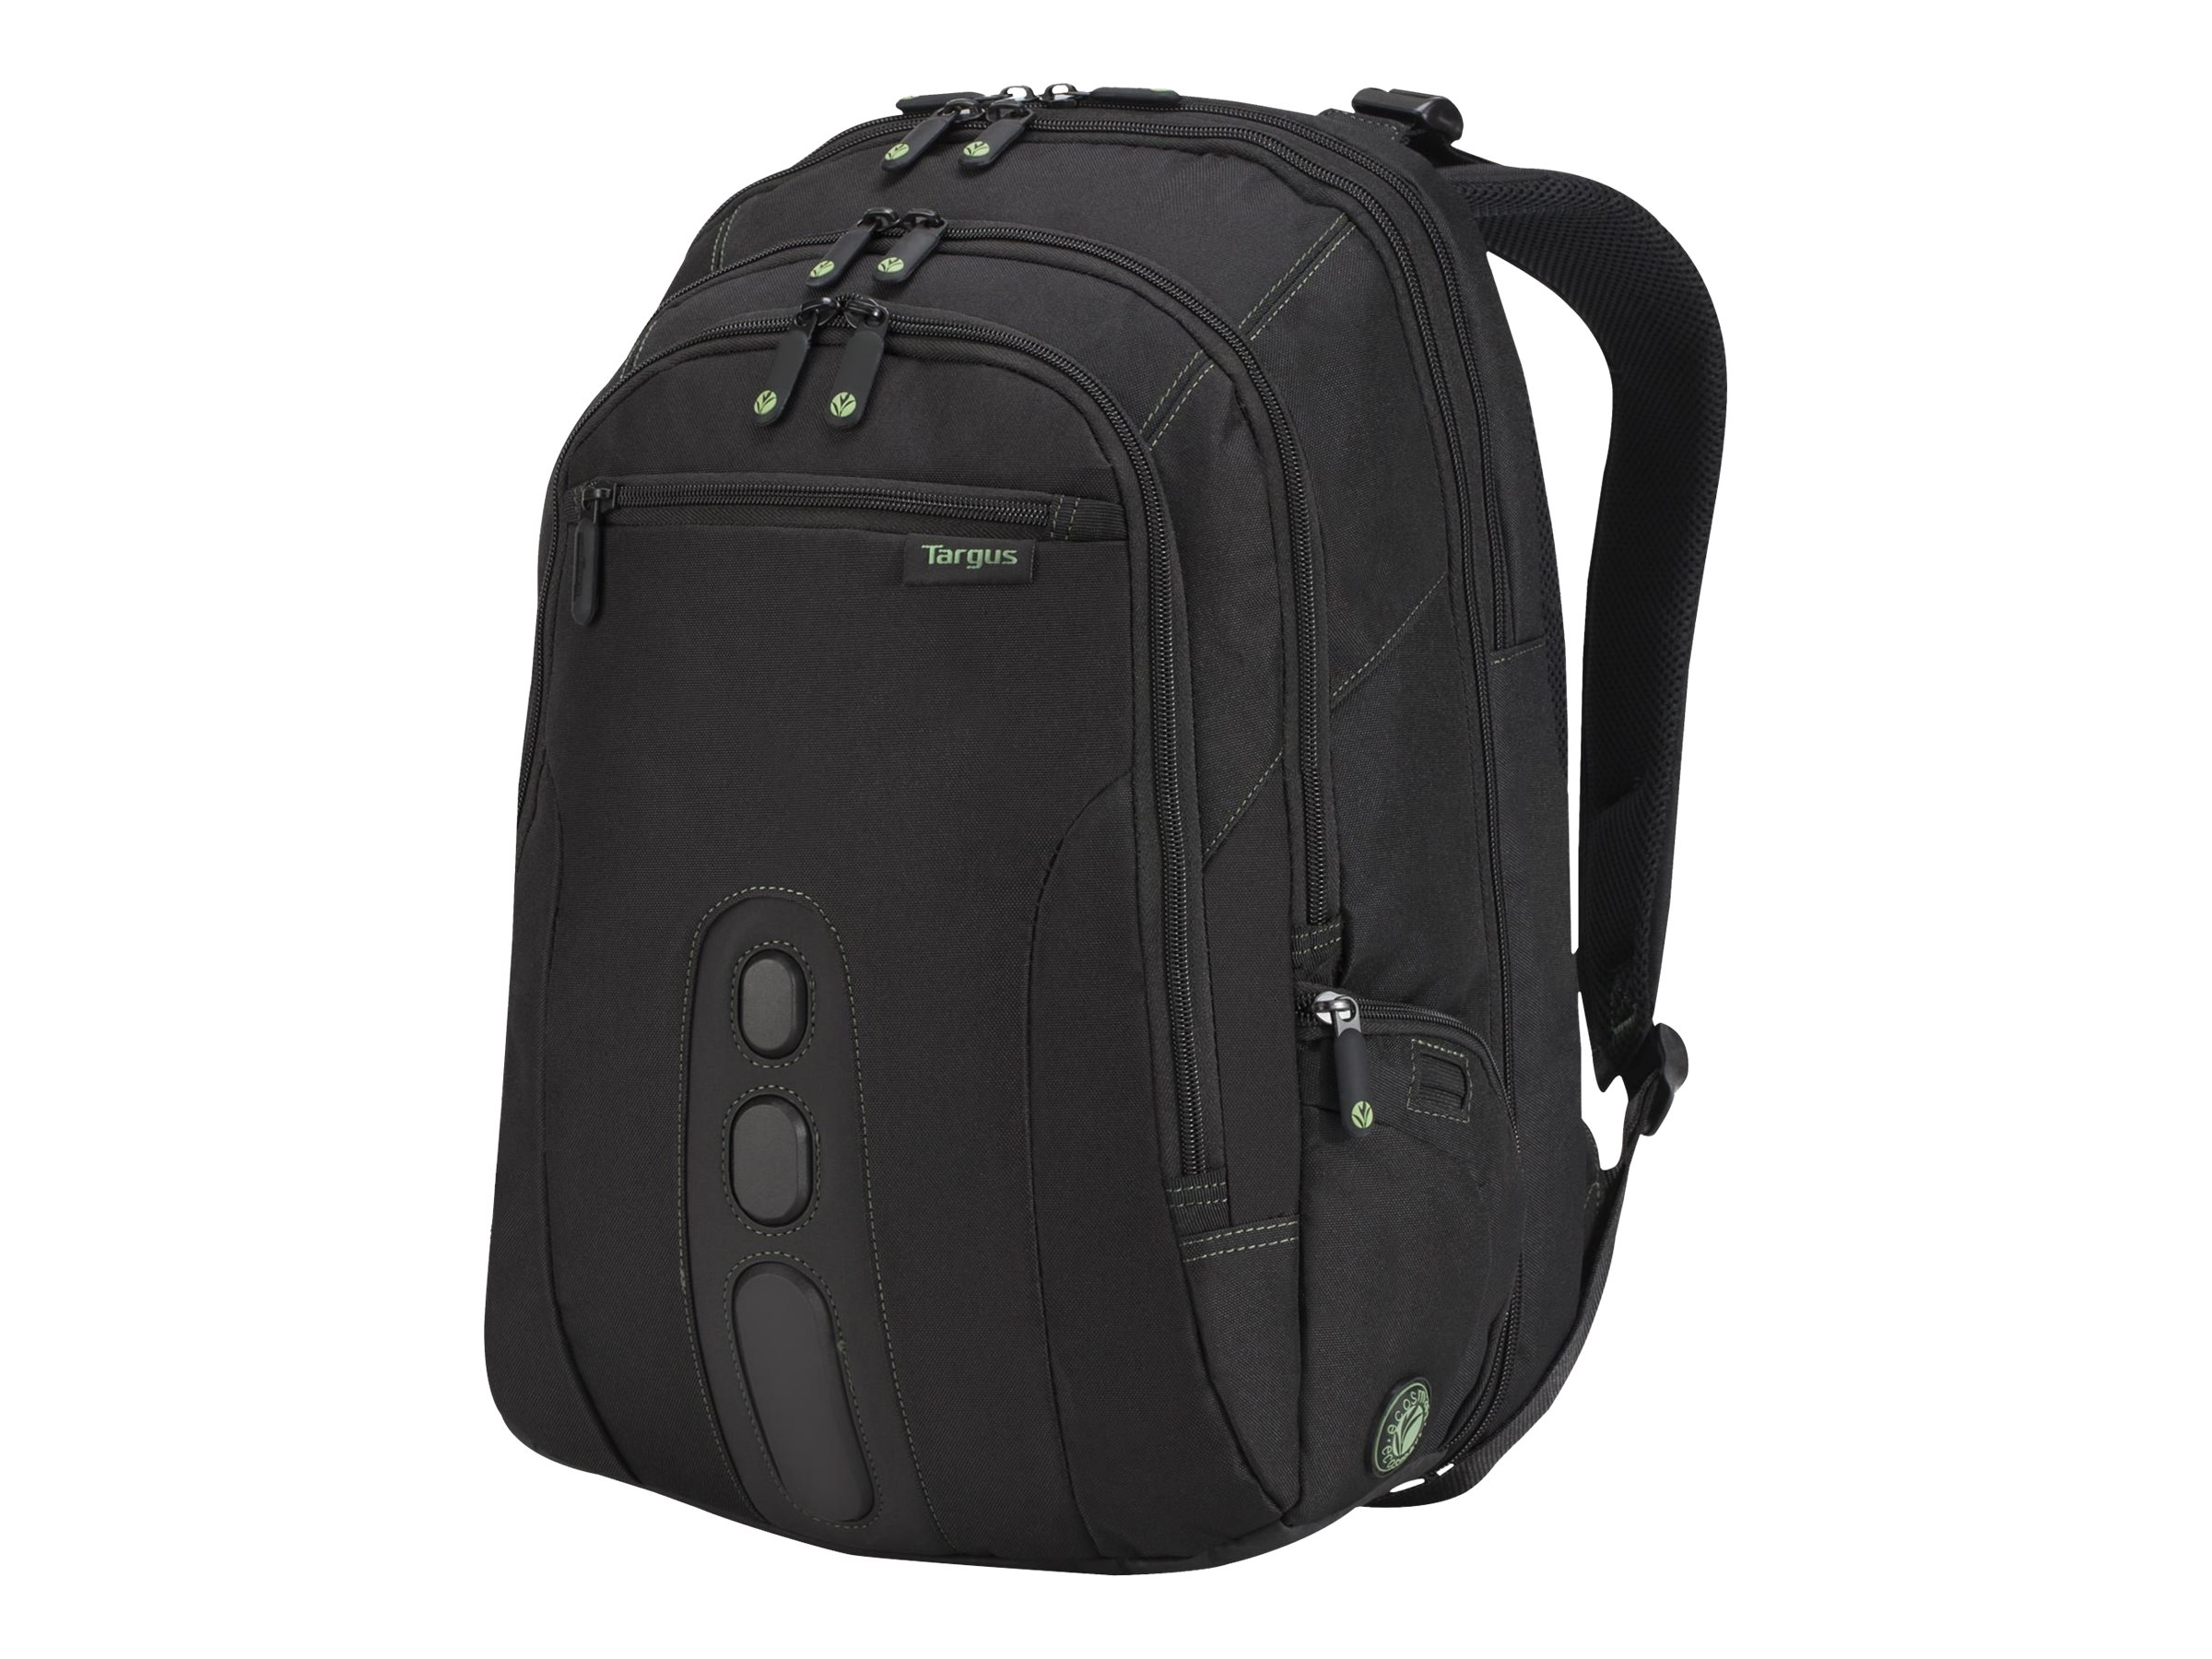 Targus Backpack Spruce Ecosmart 17 notebook, TBB019US, 11126418, Carrying Cases - Other